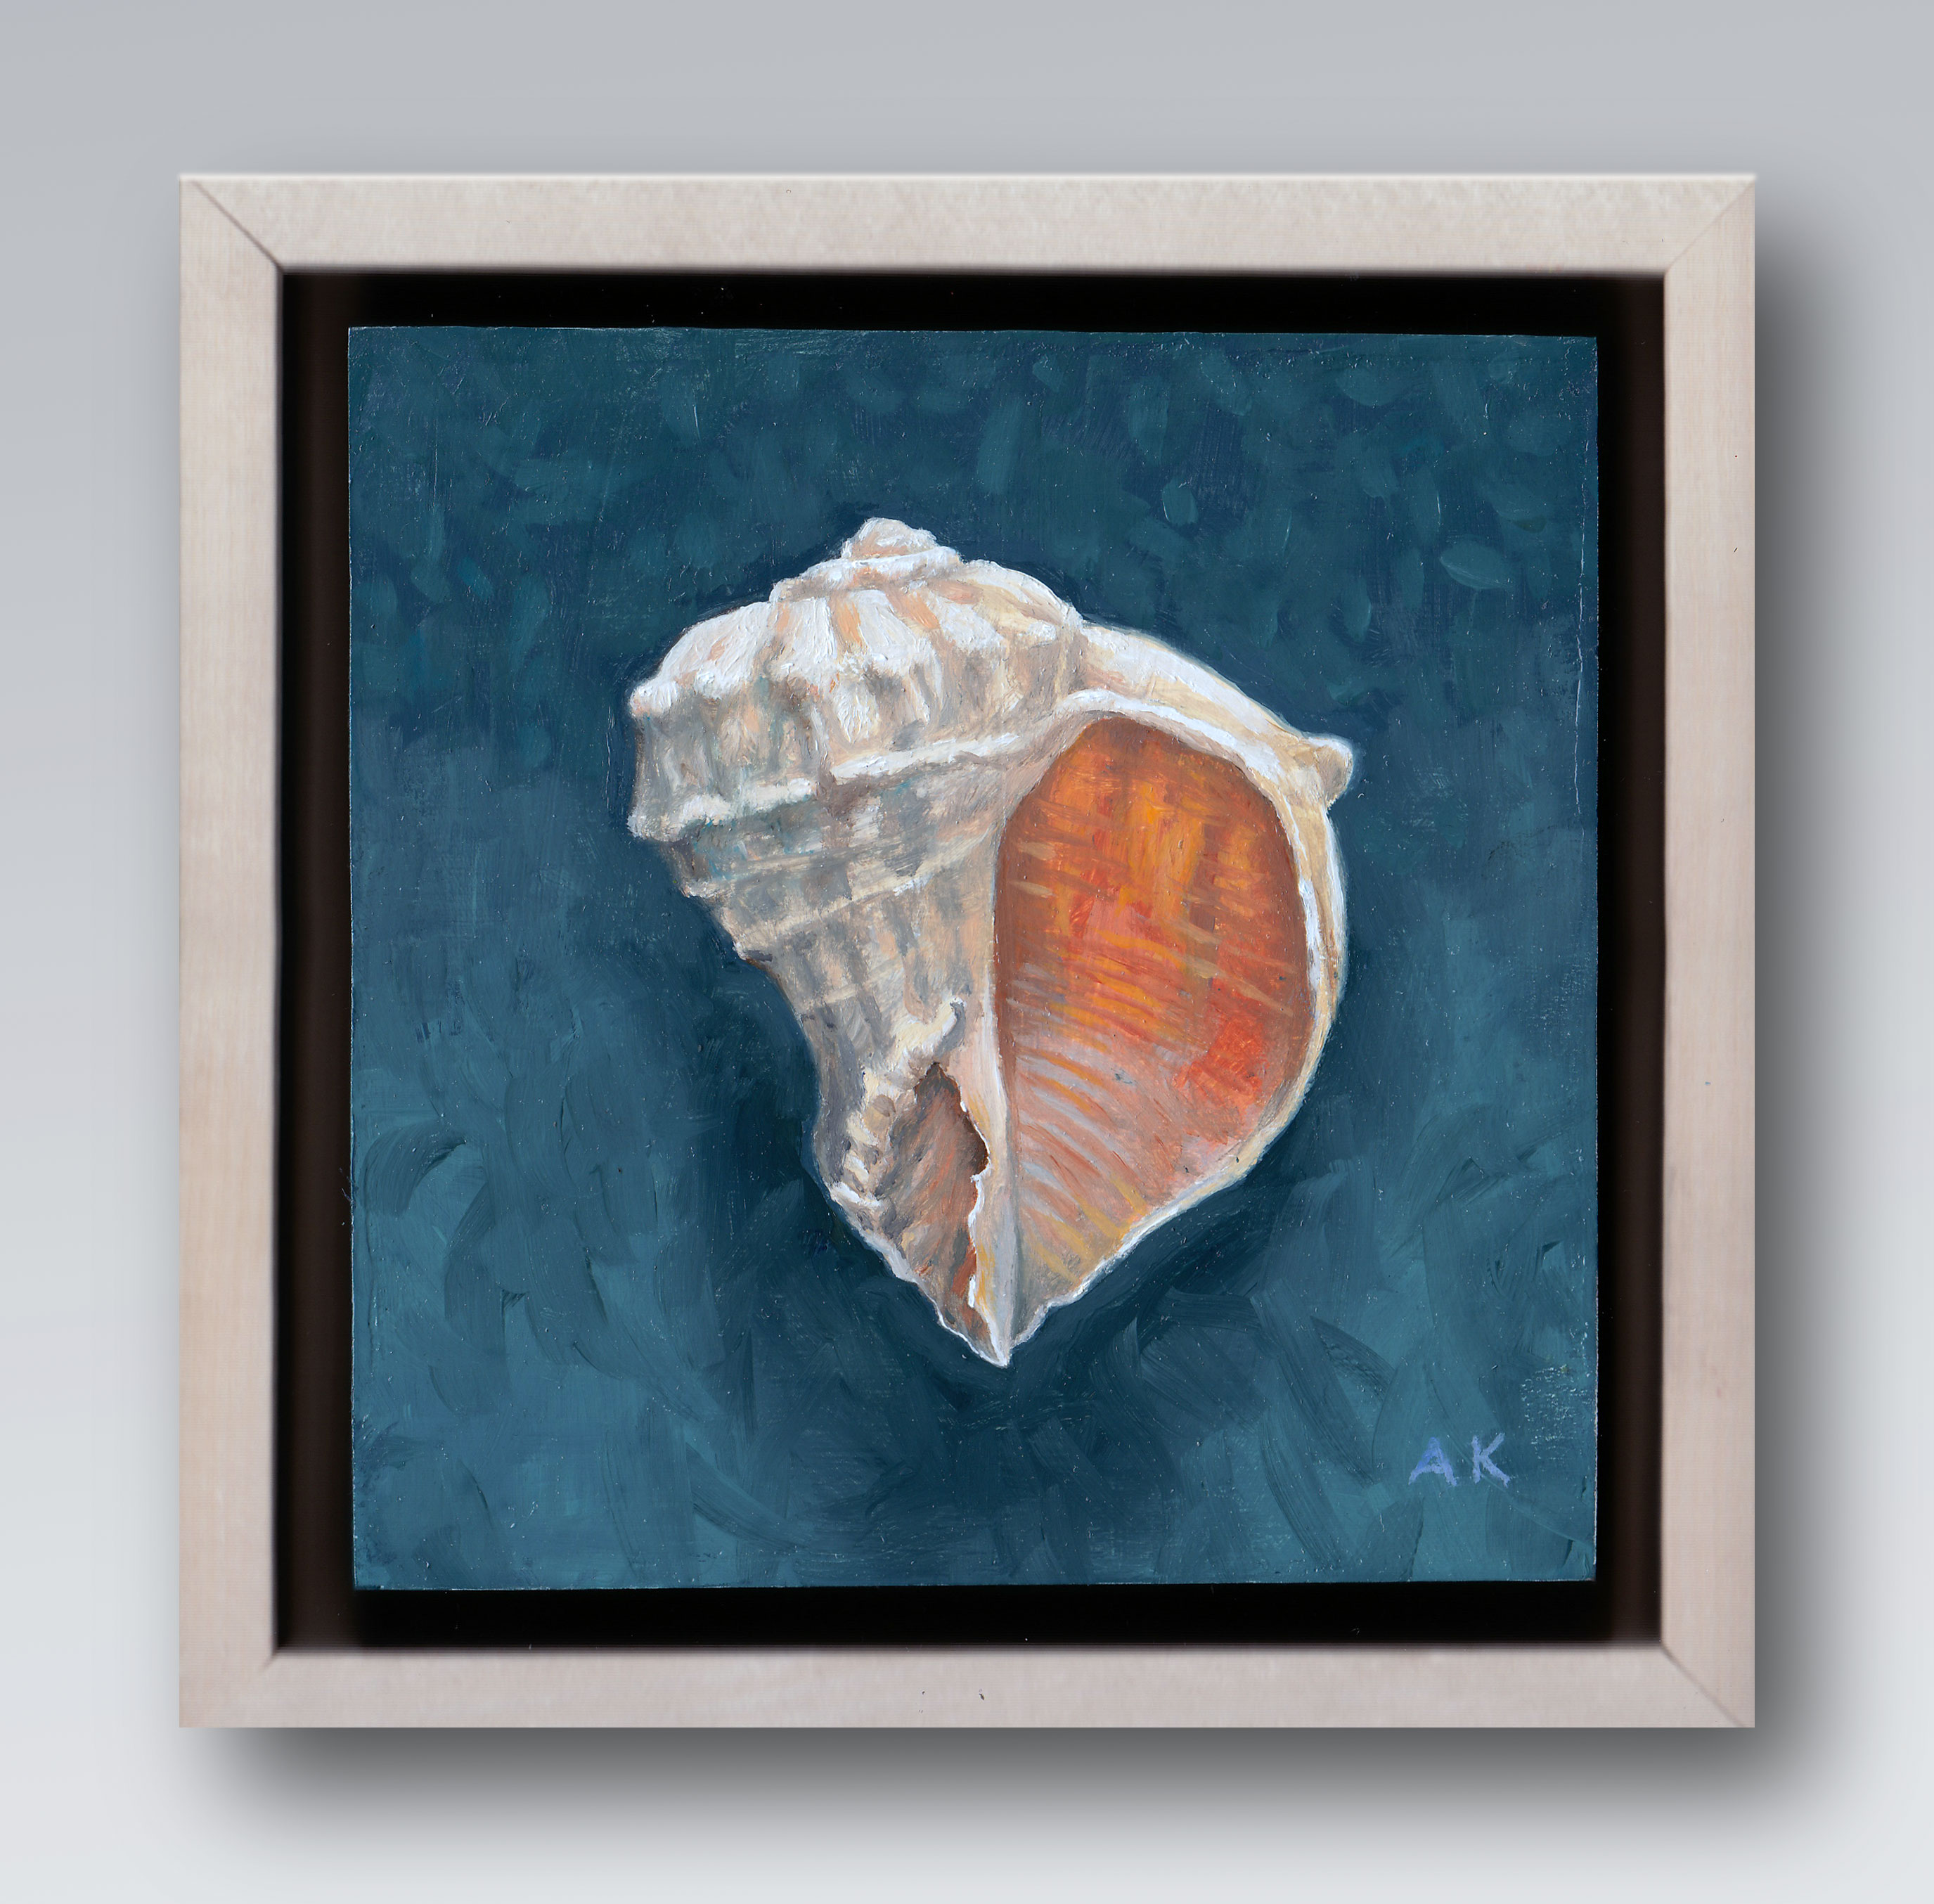 "Florida Rock - 6"" x 6"" - Oil on wood - $250.00"